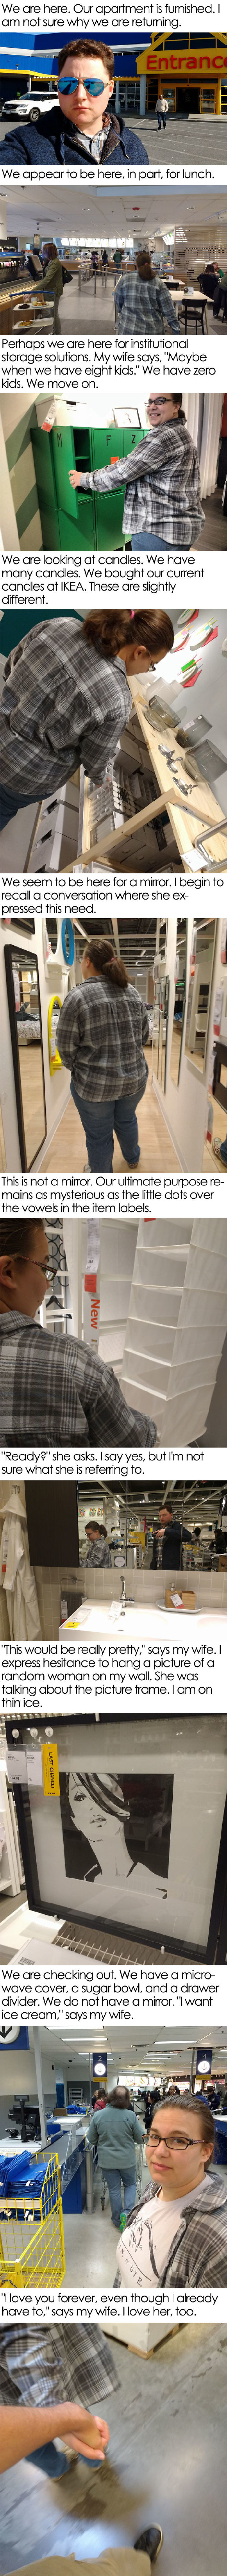 My Wife And I Visit IKEA Again And I Try To Figure Out Why